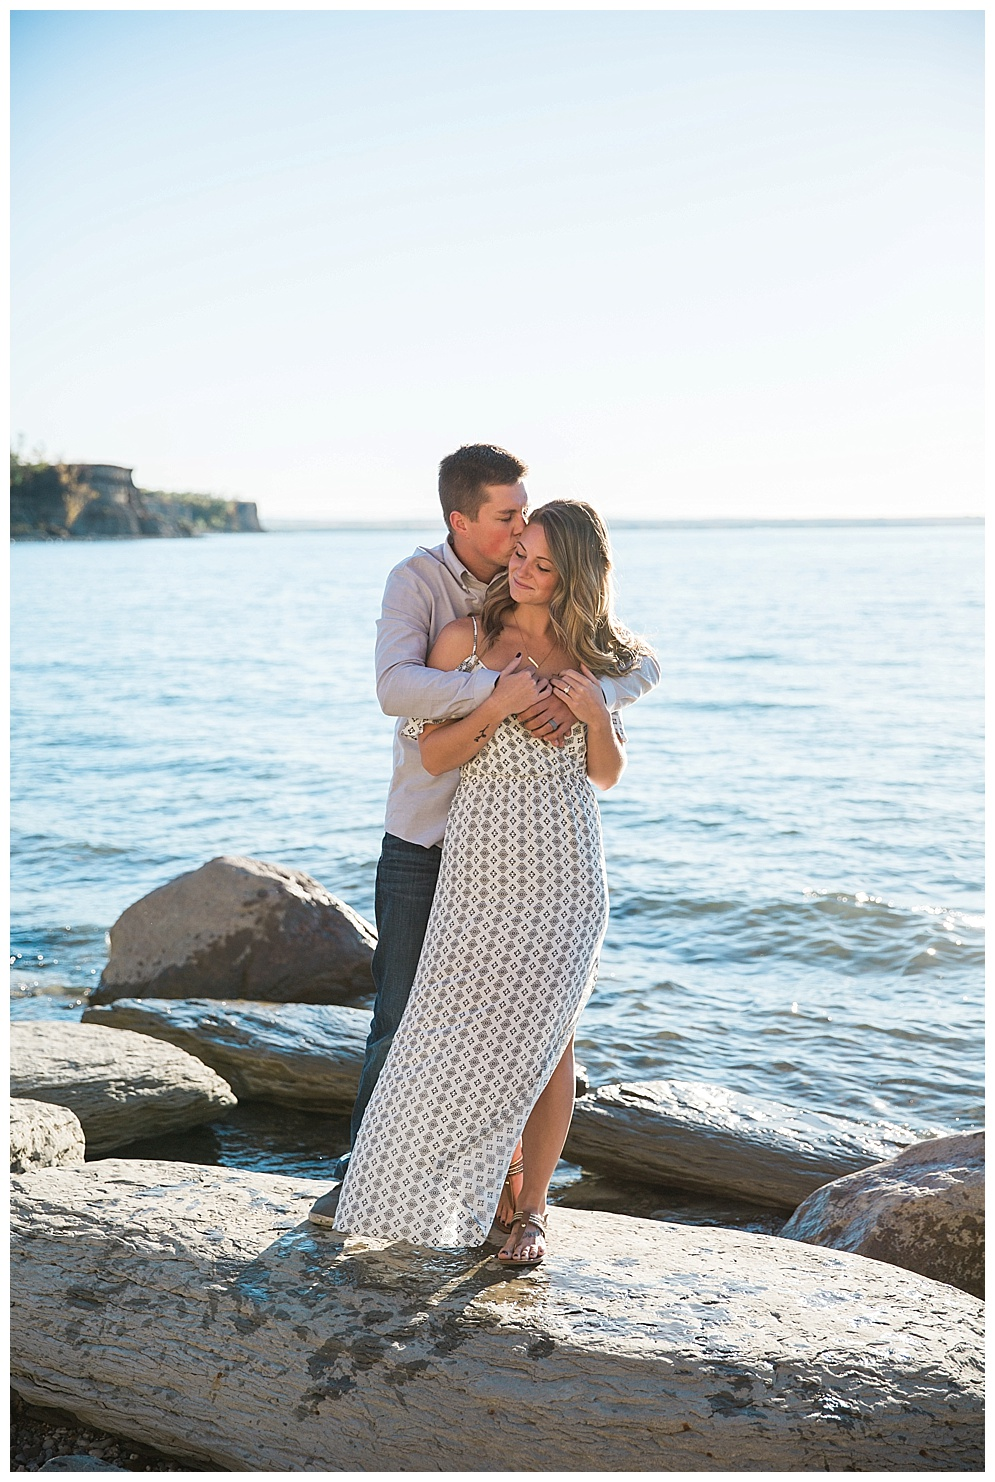 "On August 15th, 2015 I had the privilege of photographing Ashley & Logan as they said ""I Do."" A year later, I joined them on the beaches of Lake Sakakawea to celebrate their anniversary! These two hold a special place in my heart. Logan is a longtime friend and softball teammate to my husband Tyson and over the years I have been lucky enough to build a friendship with both of them. They are one of our go-to couples for fun nights out and good laughs! I enjoy watching their relationship grow and can't wait to see where they are in another year!"